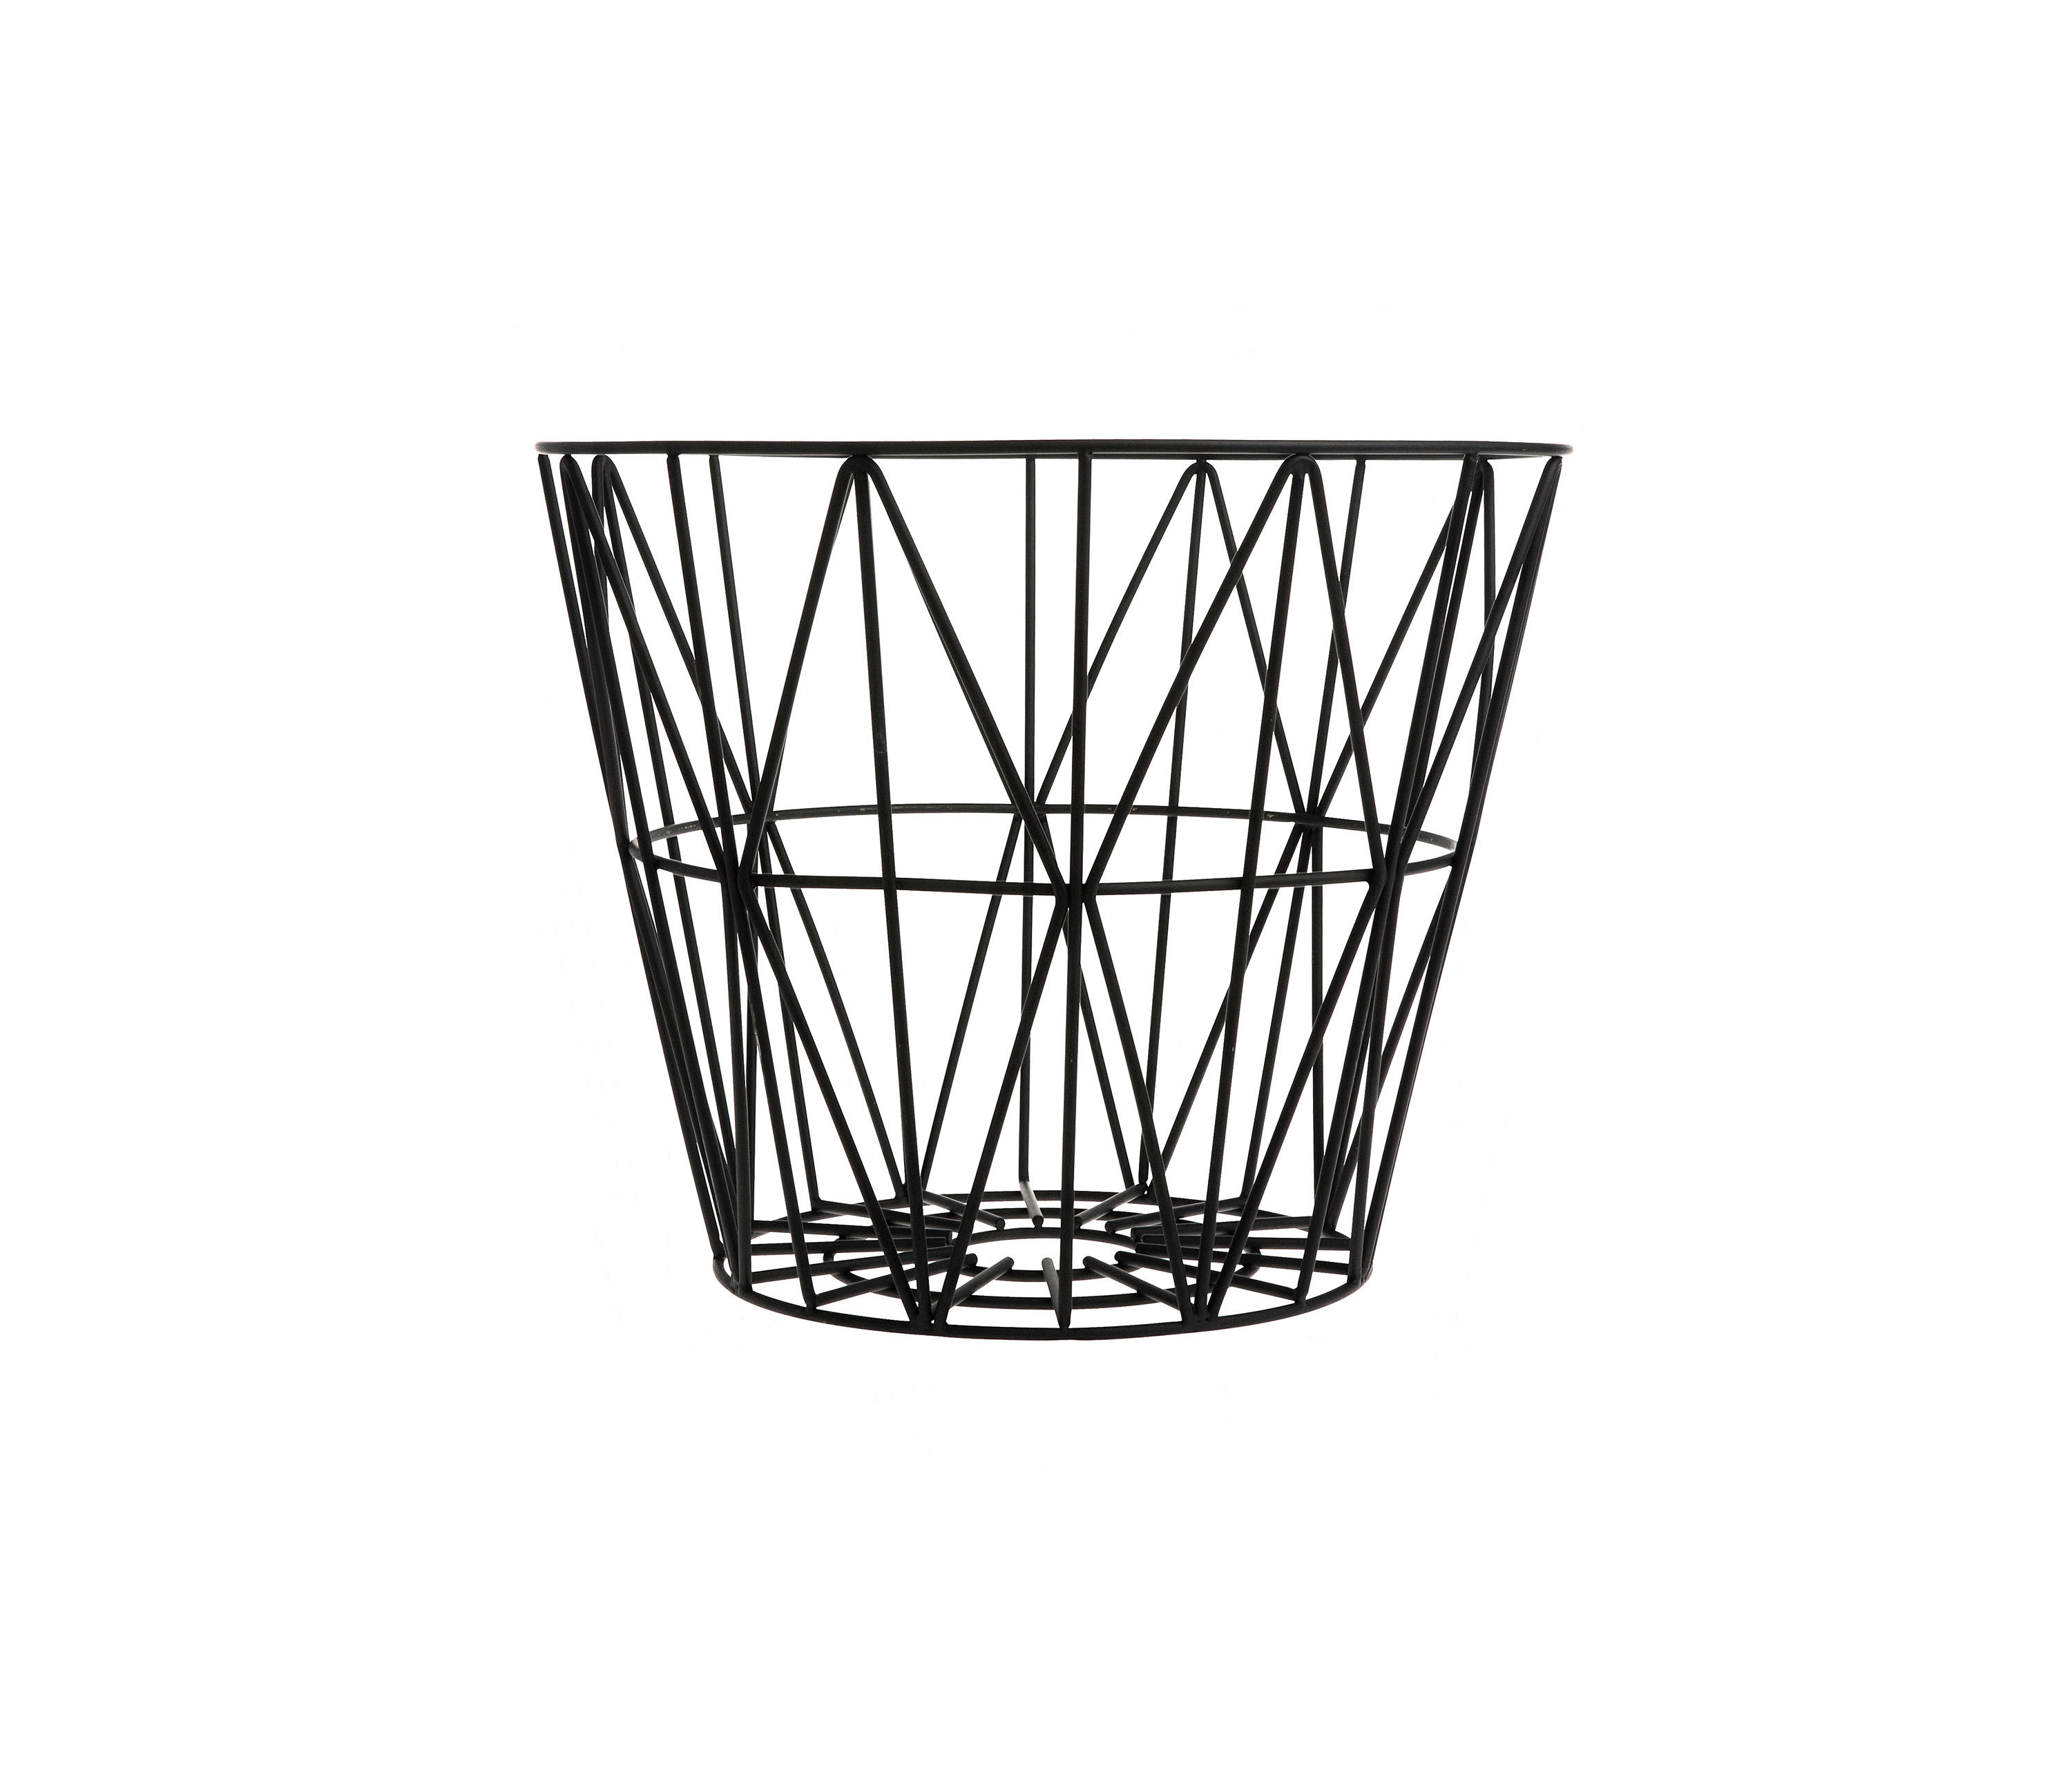 wire basket small black waste baskets from ferm living. Black Bedroom Furniture Sets. Home Design Ideas